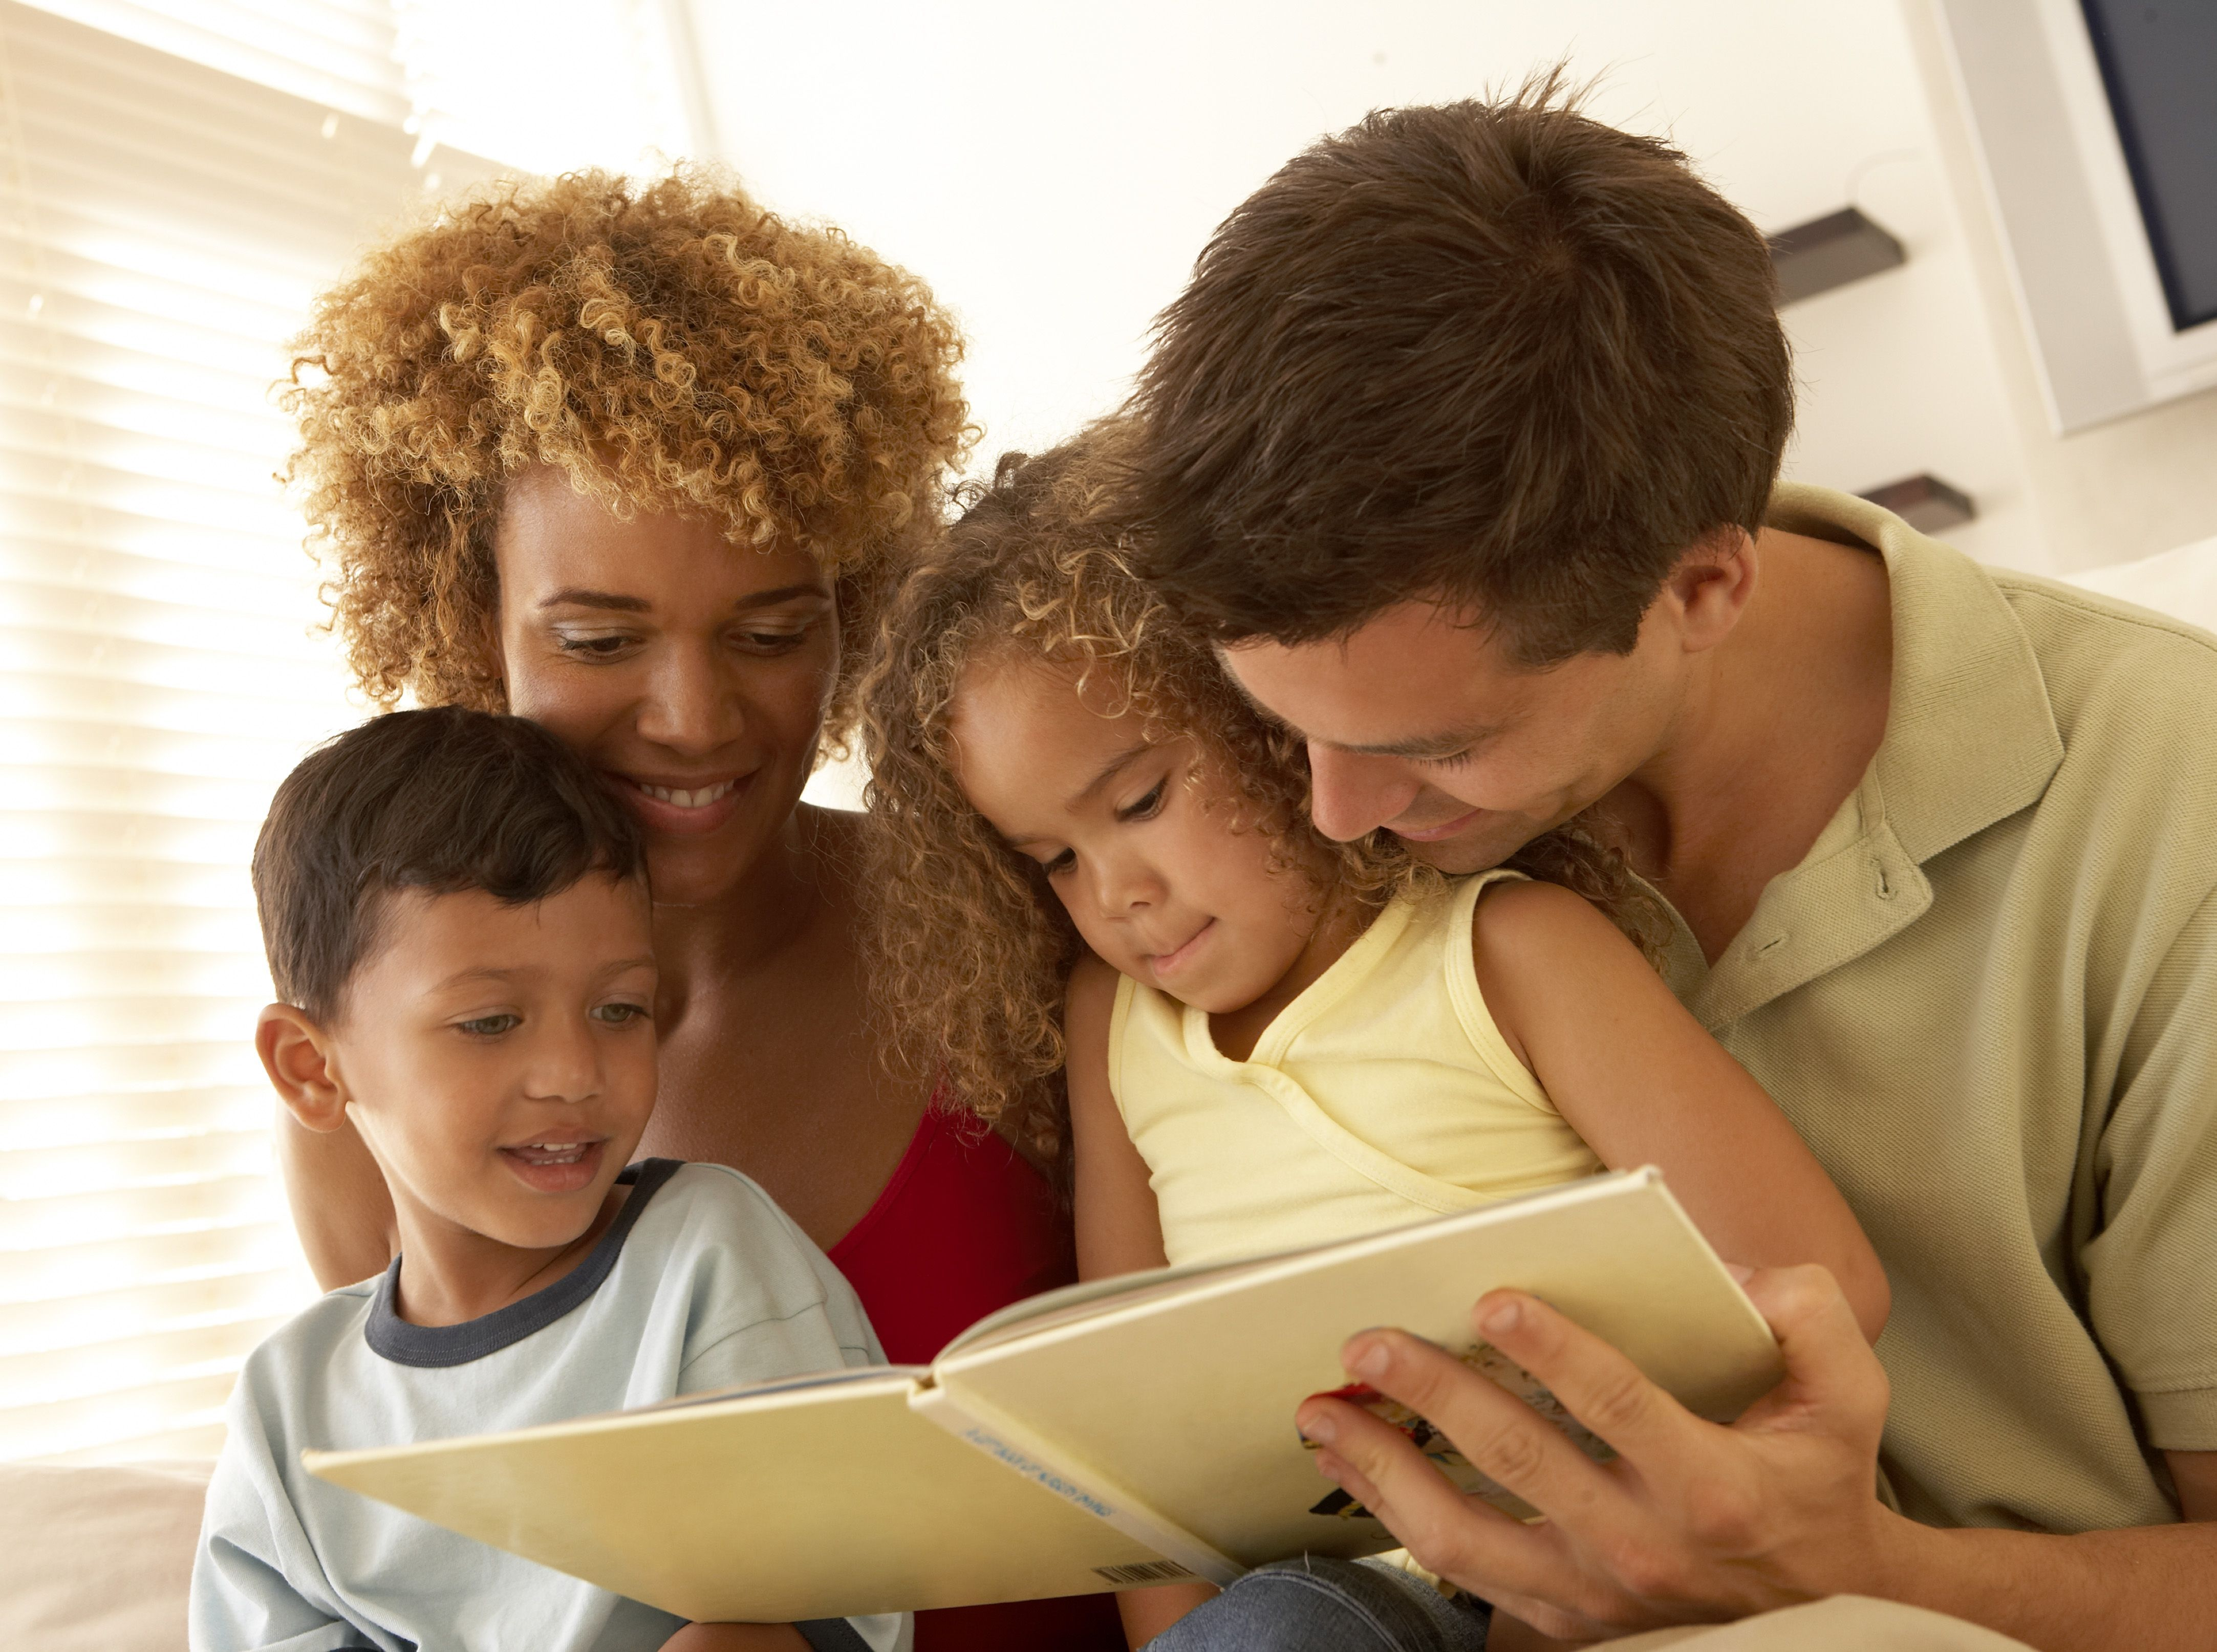 Children S Books About Adoption Helpful Books To Read To Your Adopted Child Better Living Adoption Services